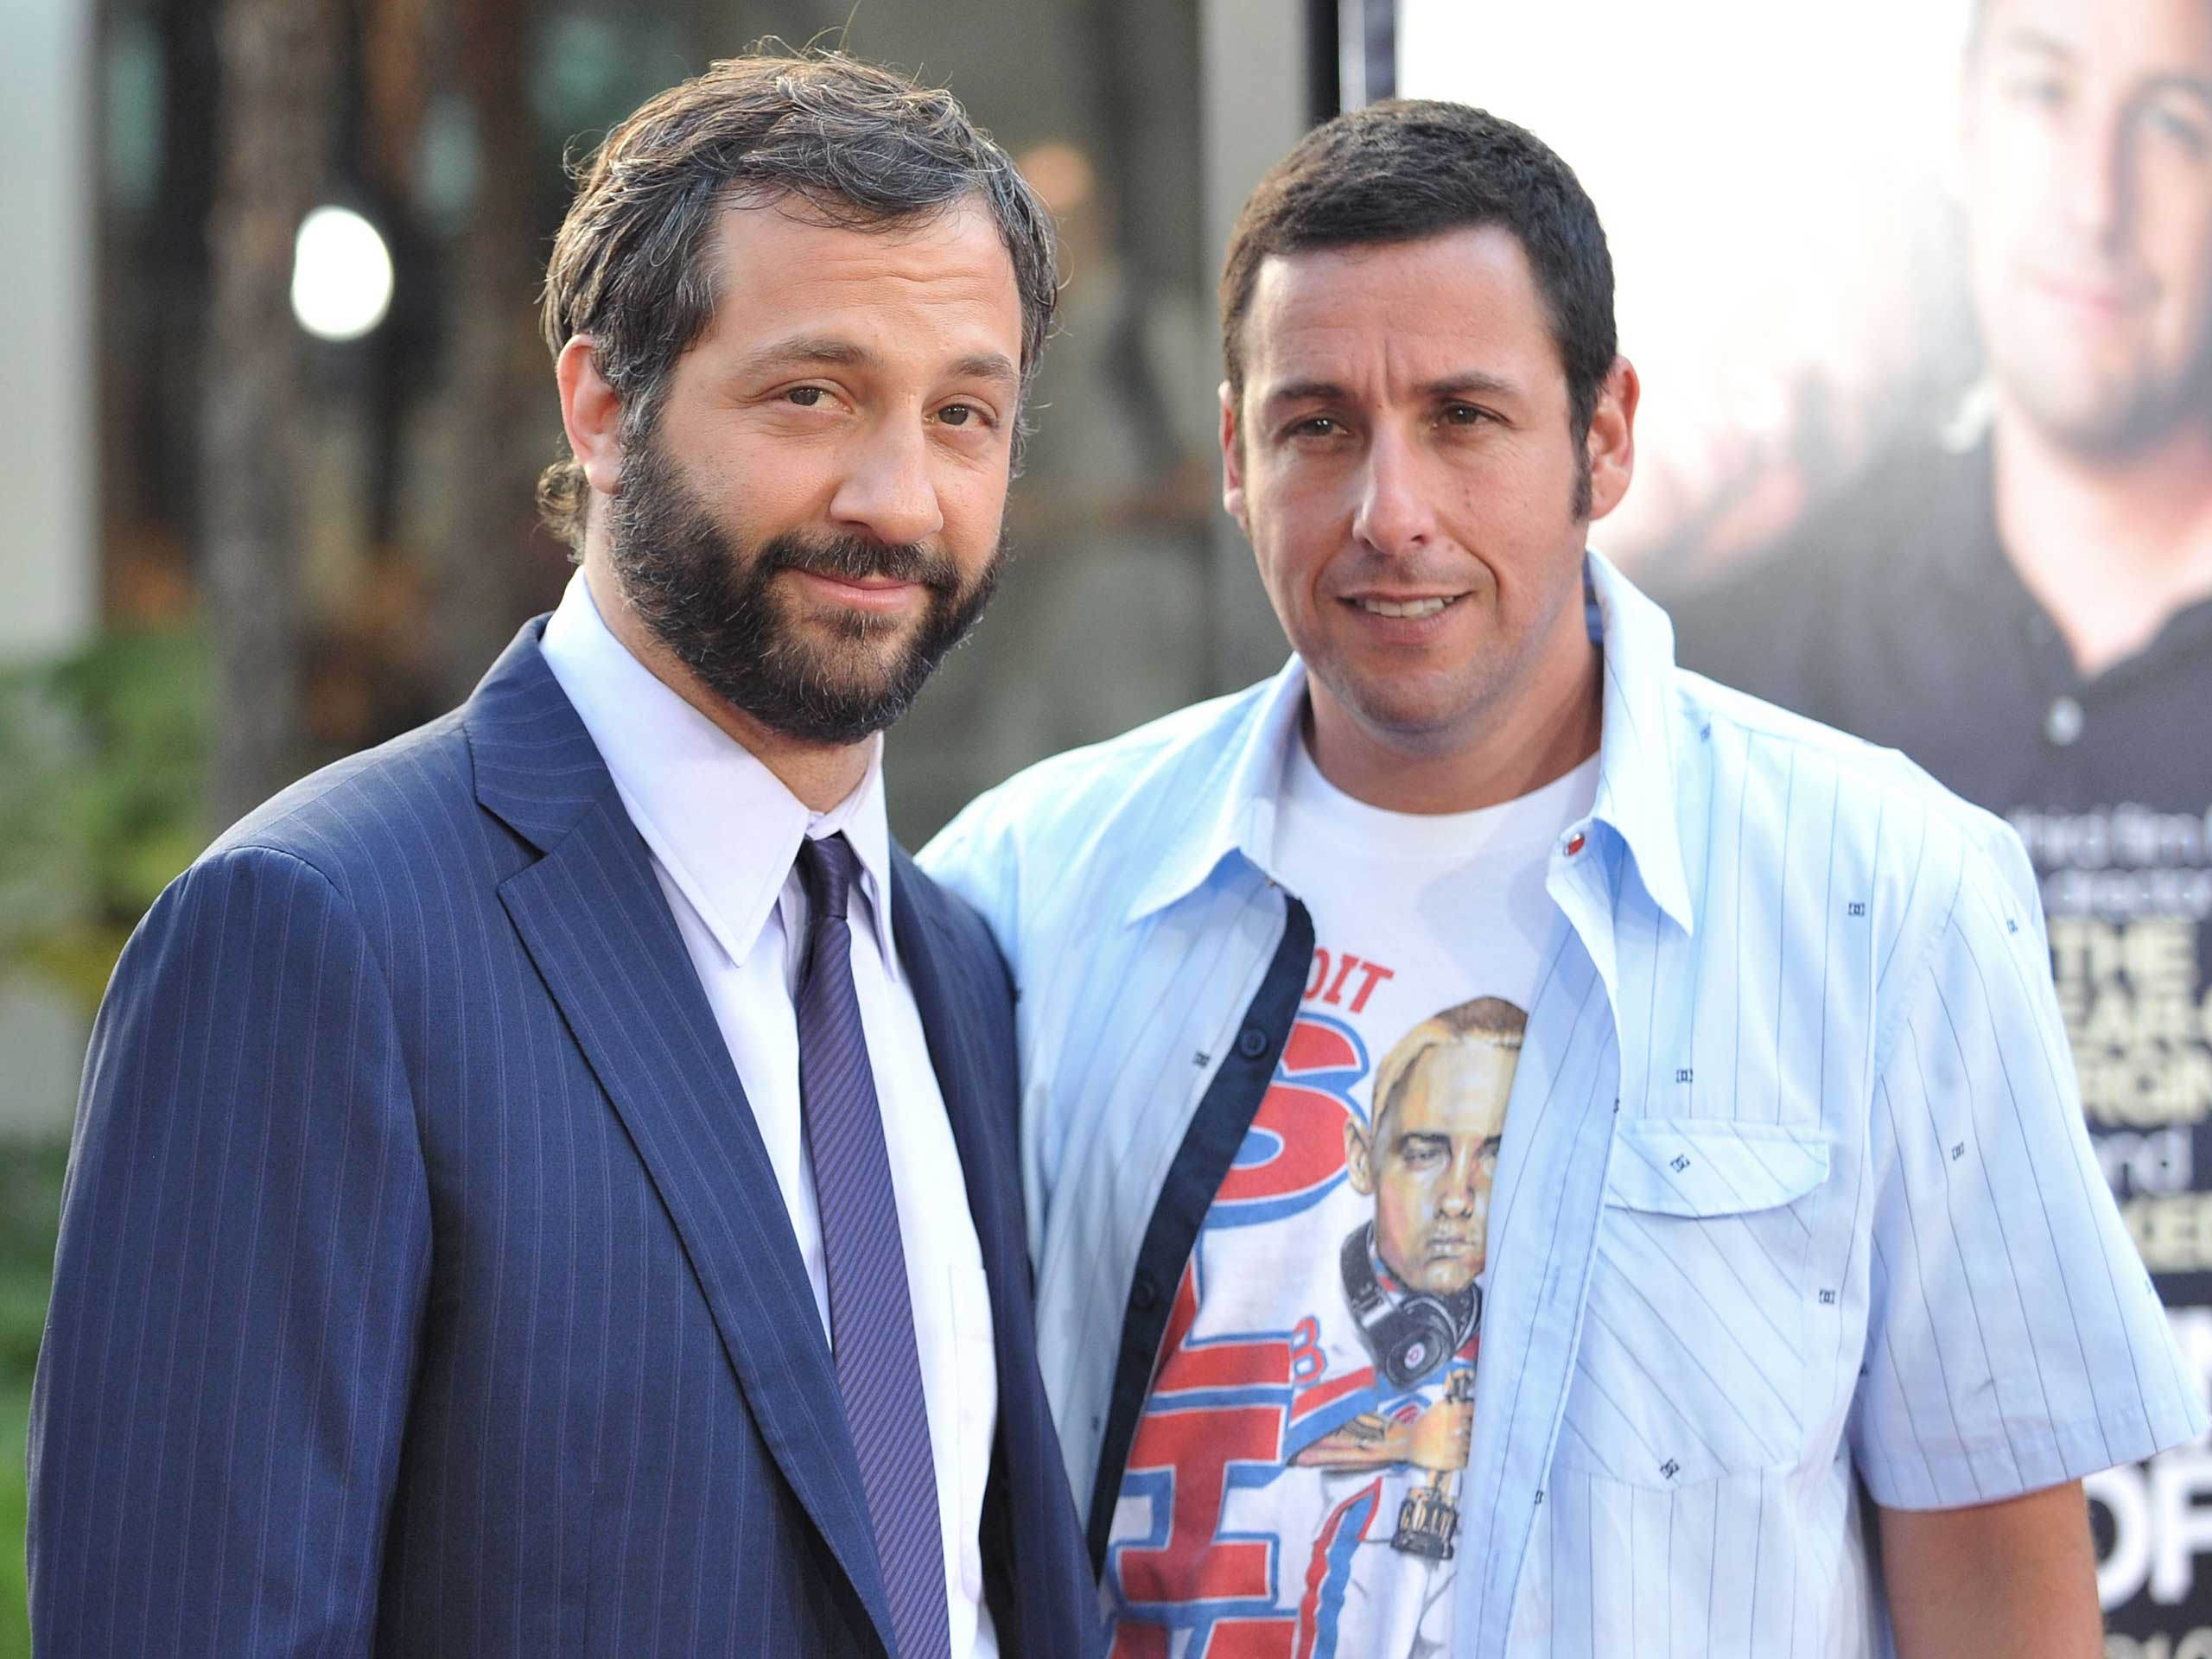 More roomies! Judd Apatow and Adam Sandler lived together early in their careers.